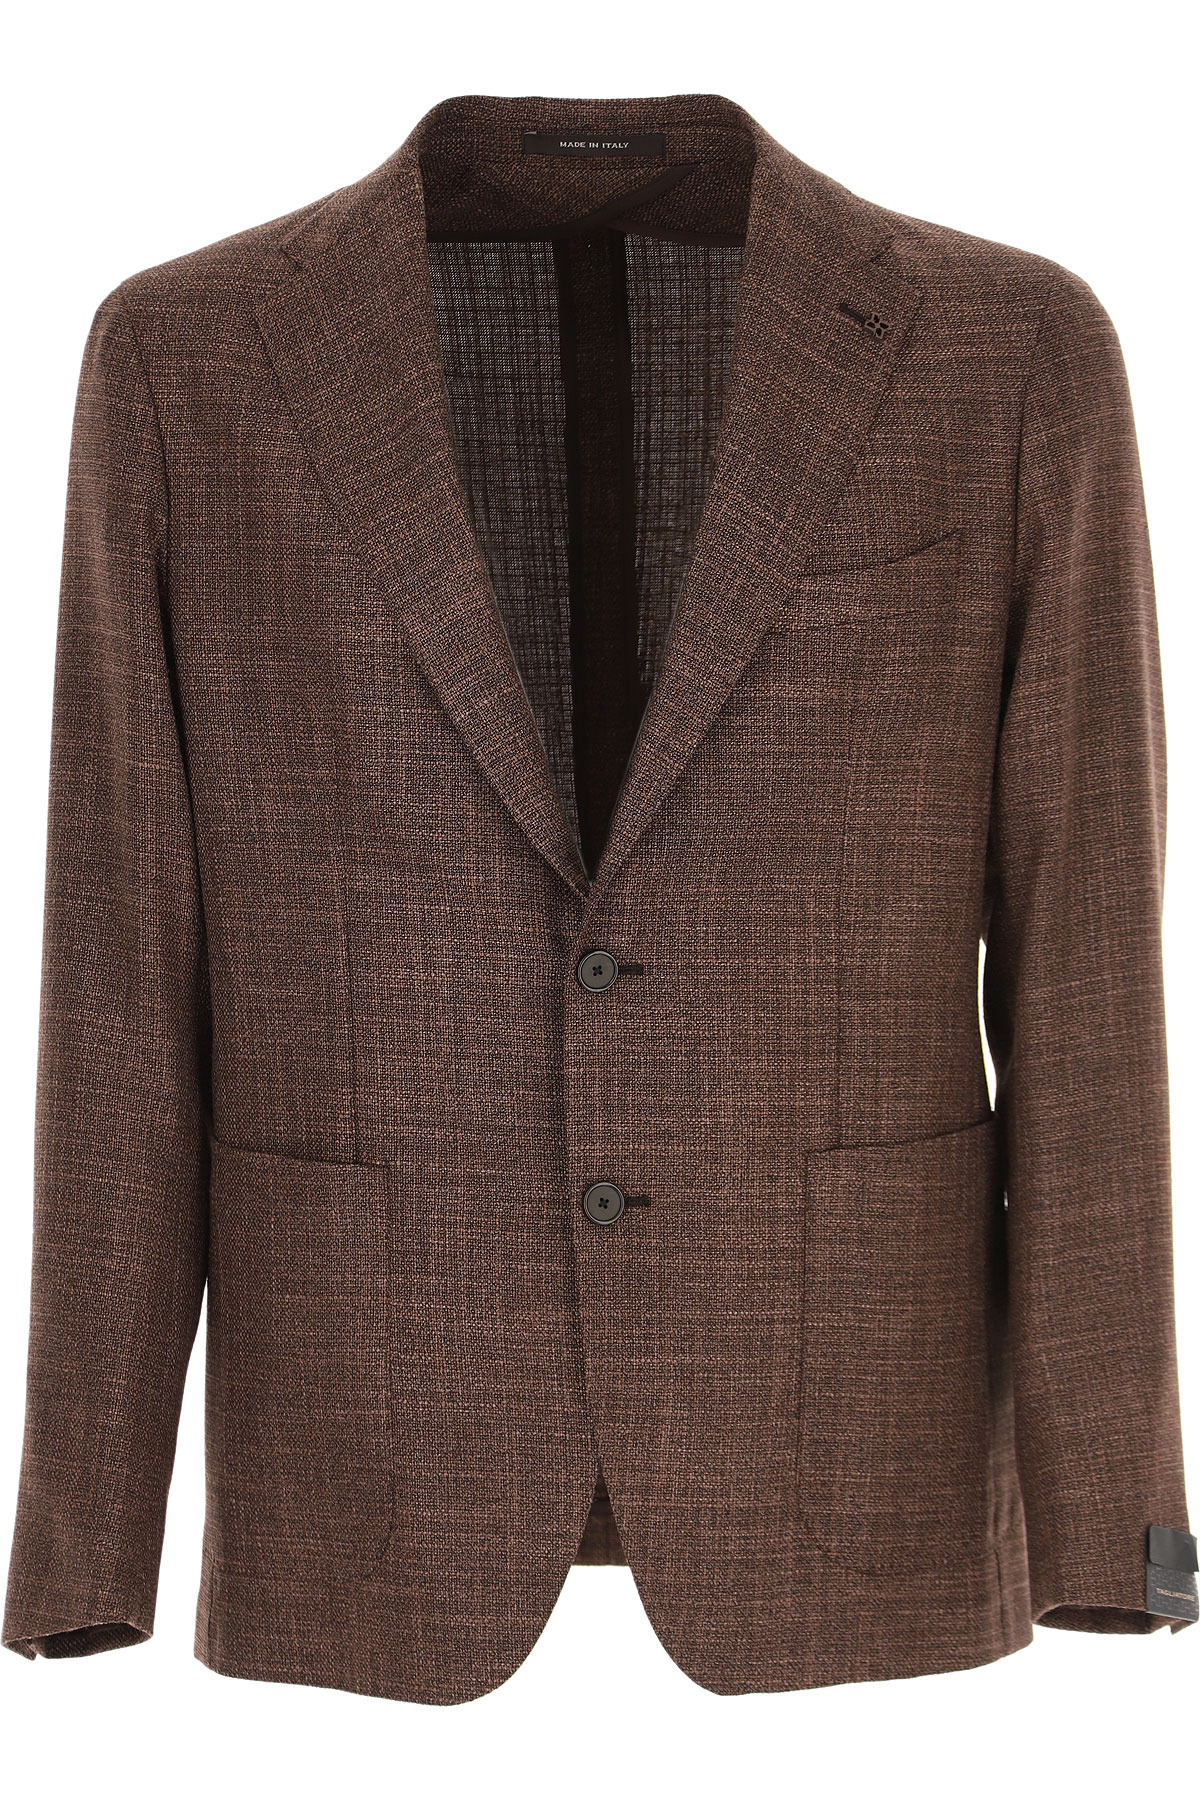 Tagliatore Blazer for Men, Sport Coat On Sale, Brown, Wool, 2019, L M XL XXL